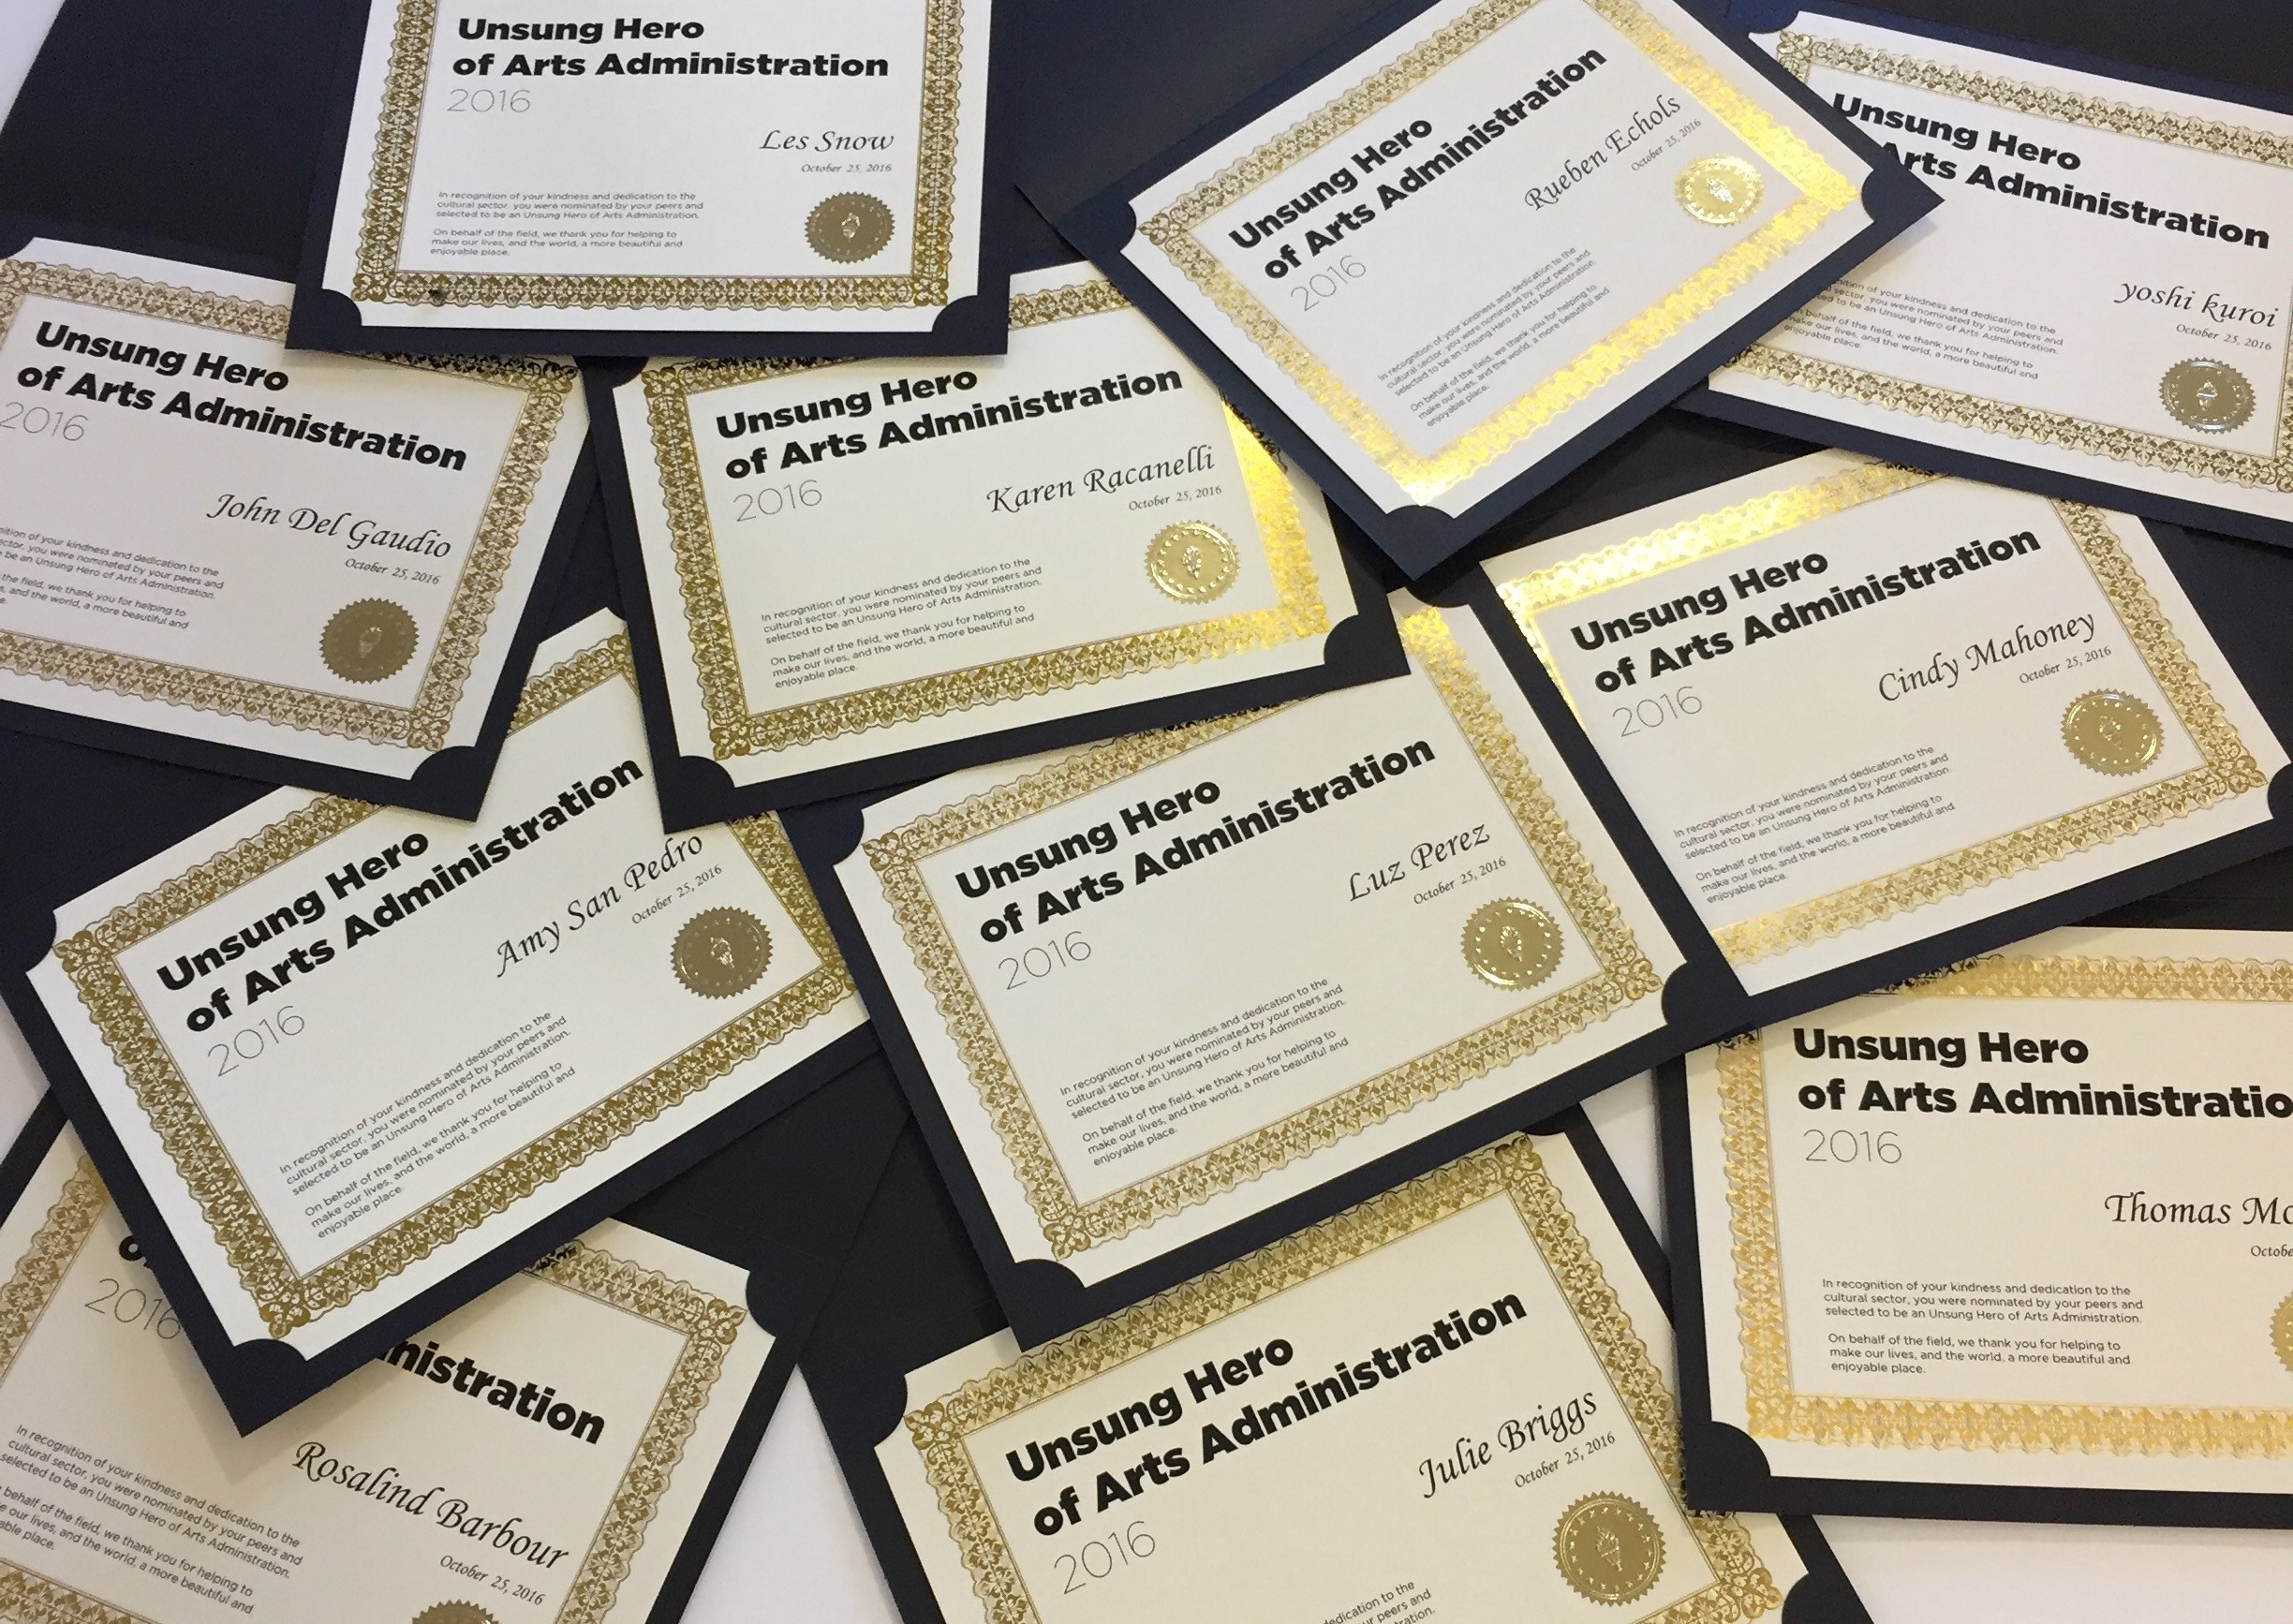 Announcing the 2016 Unsung Heroes of Arts Administration